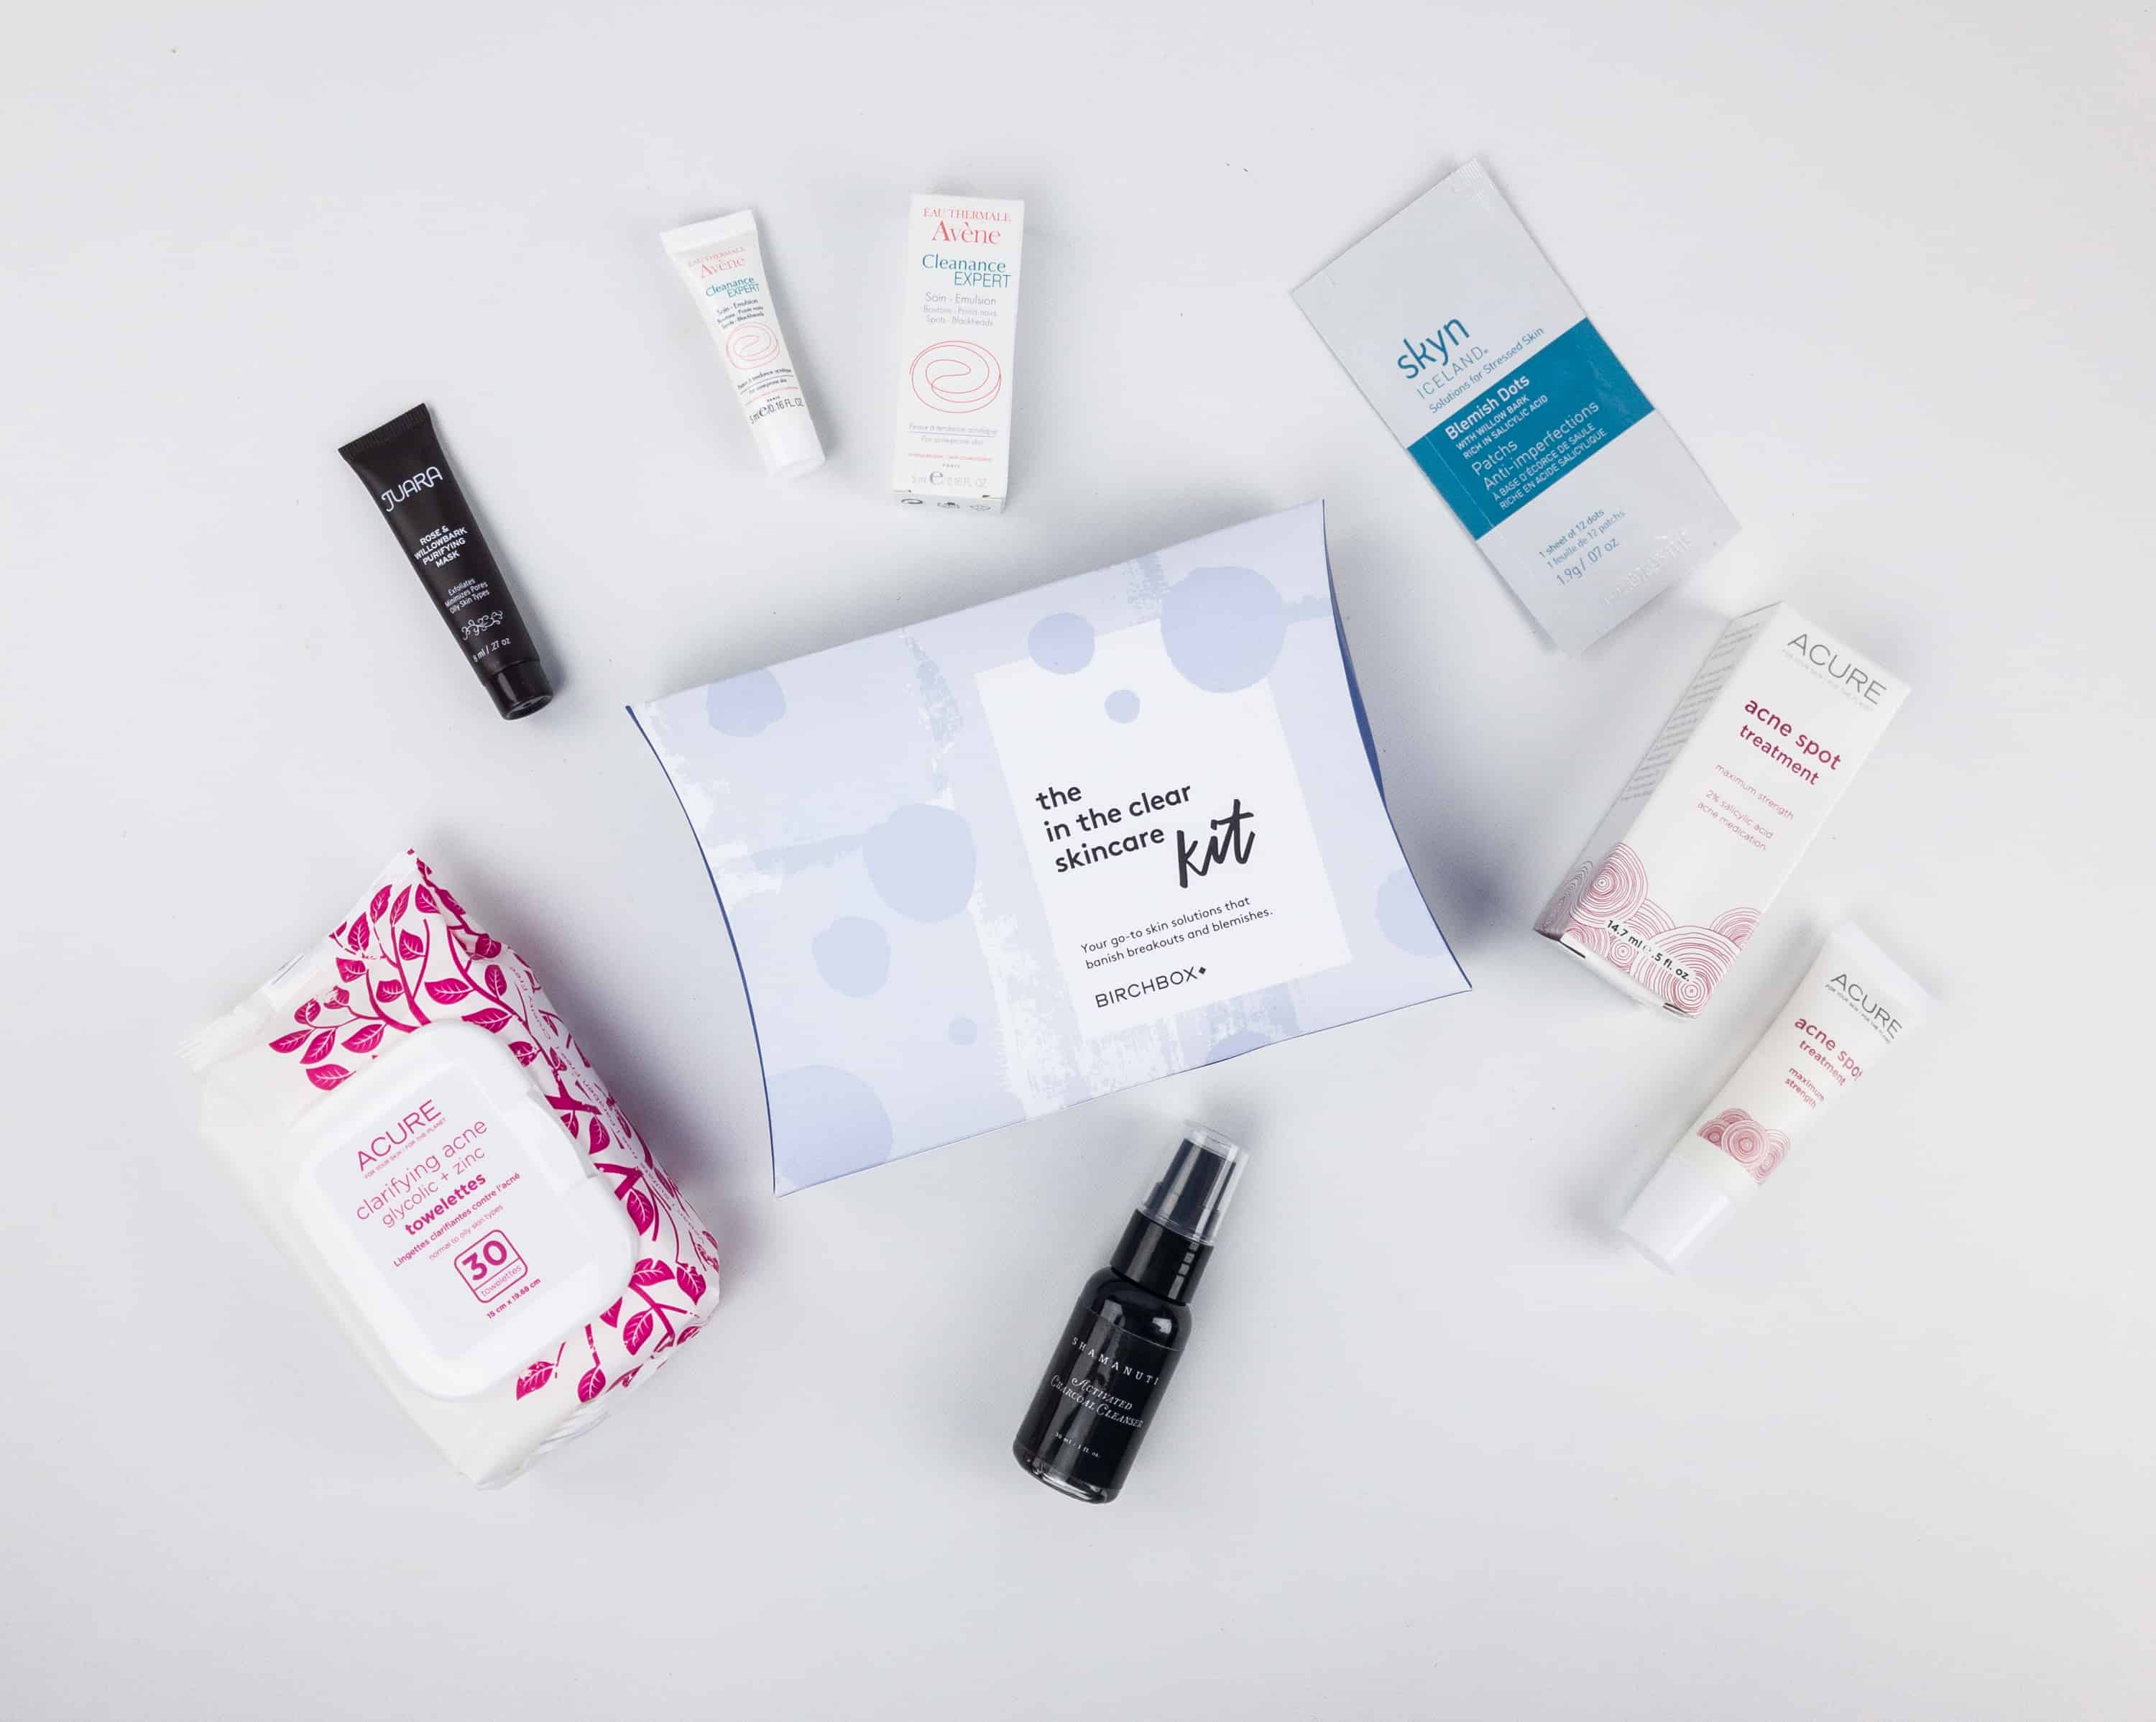 Birchbox In The Clear Skincare Kit Review